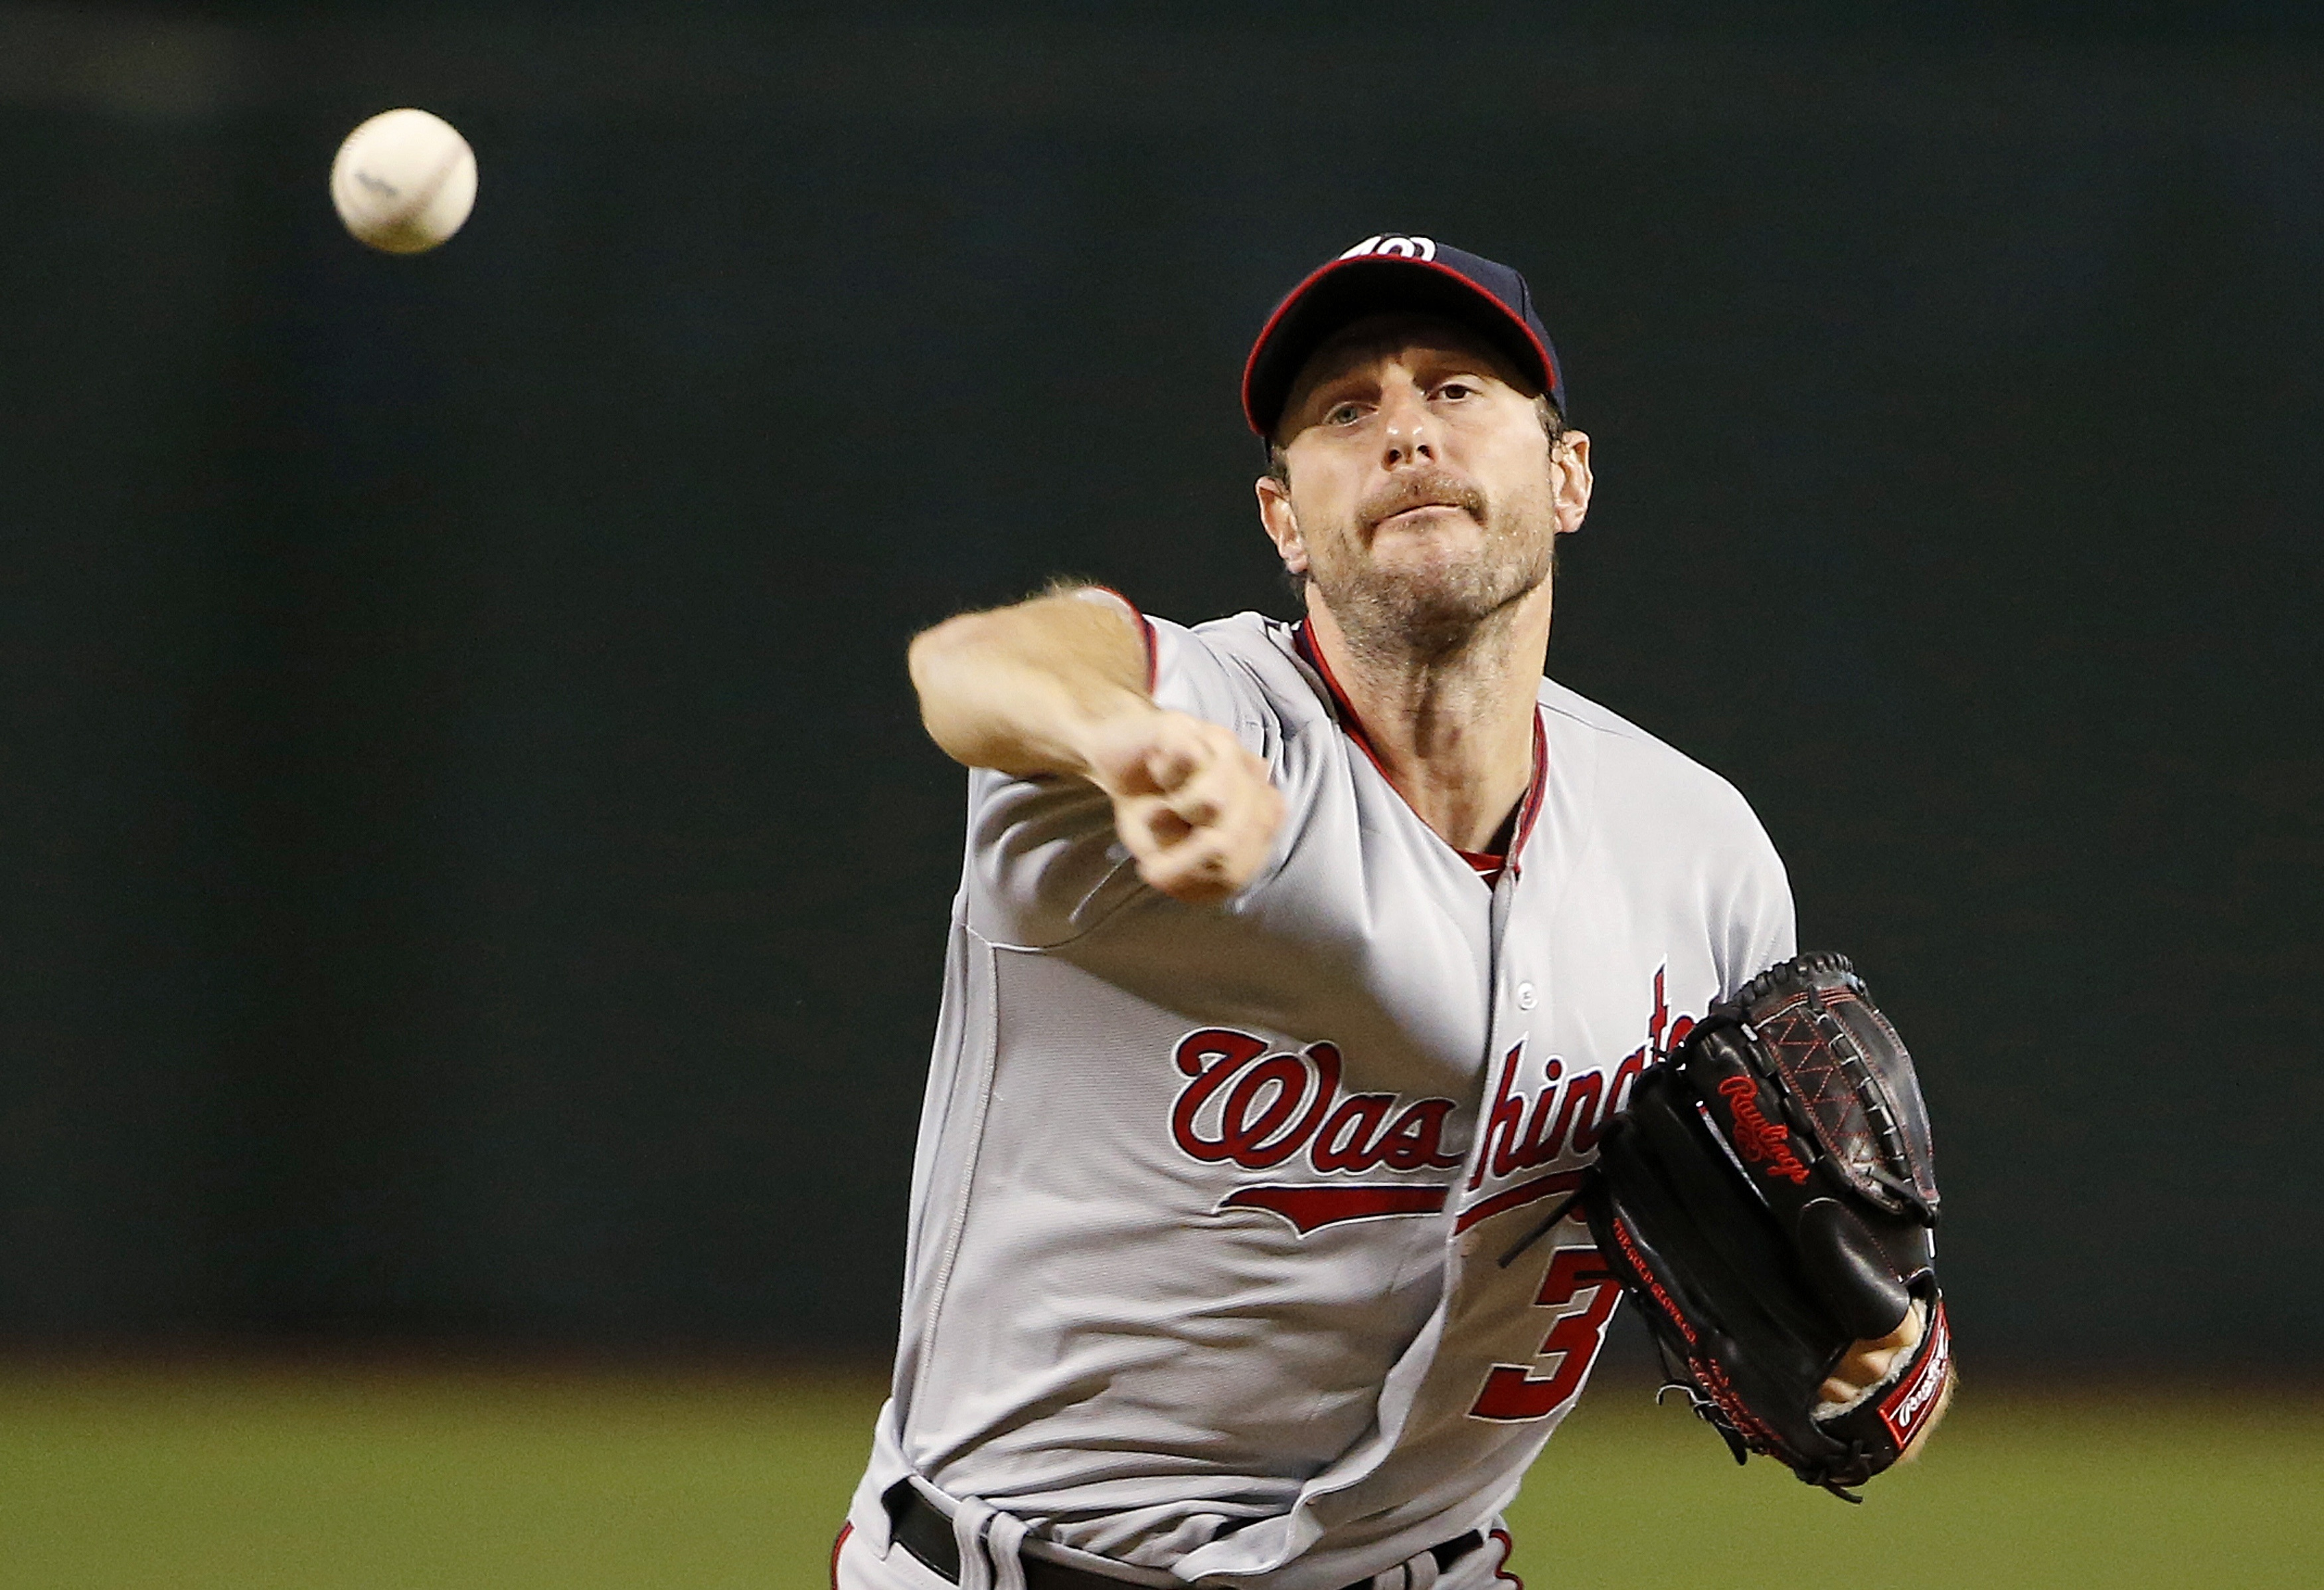 Washington Nationals' Max Scherzer warms up during the first inning of a baseball game against the Arizona Diamondbacks Wednesday, Aug. 3, 2016, in Phoenix. (AP Photo/Ross D. Franklin)